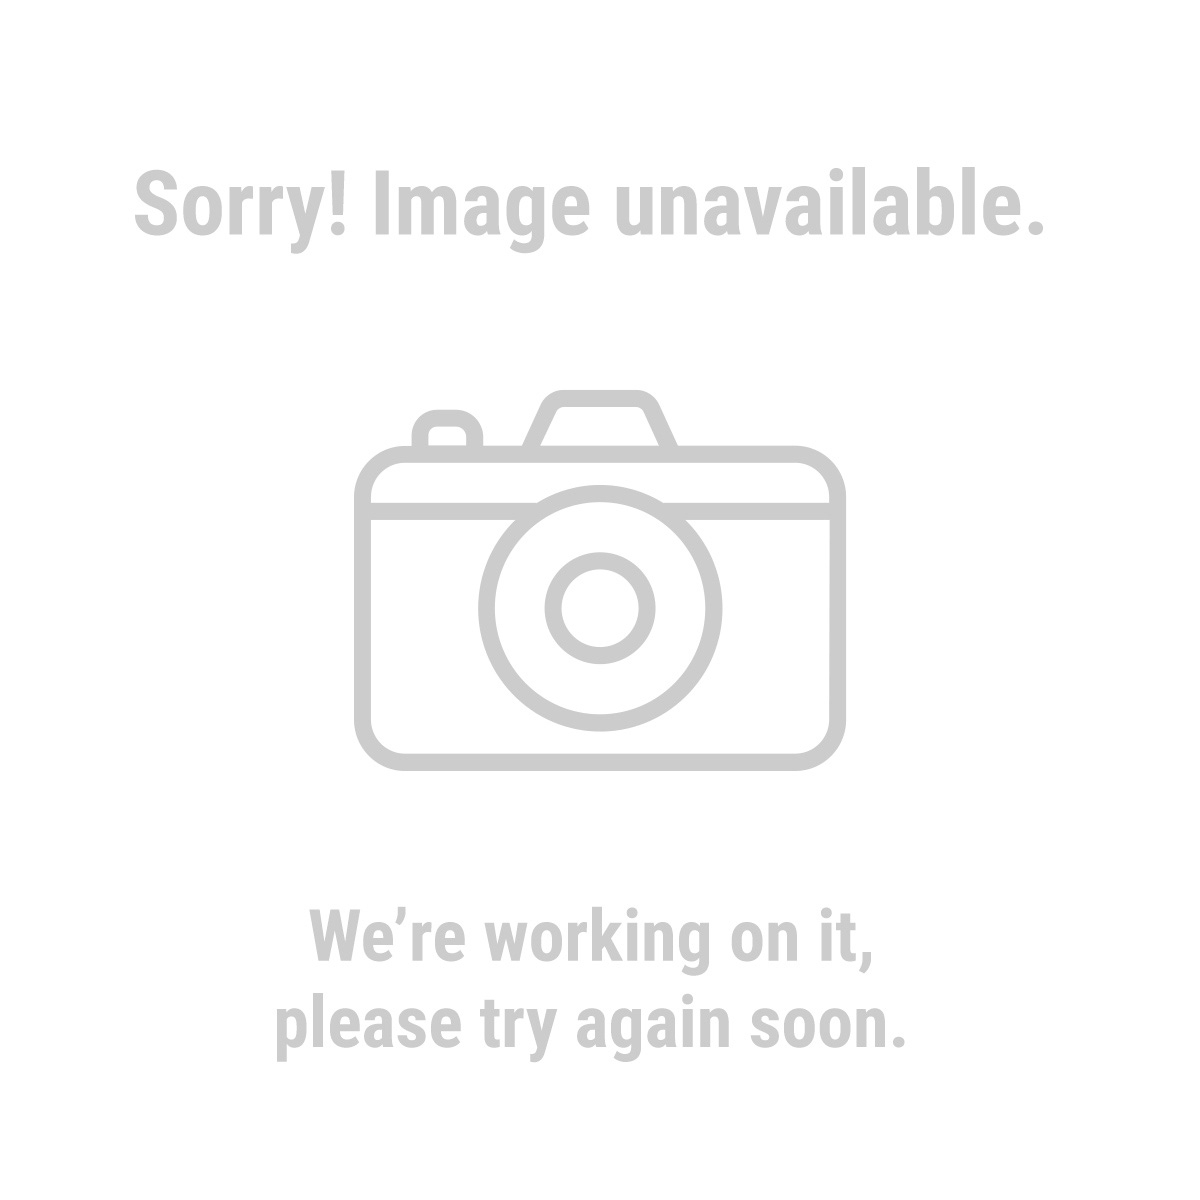 "Pittsburgh 69261 64 Piece 1/4"", 3/8"" and 1/2"" Socket Set"